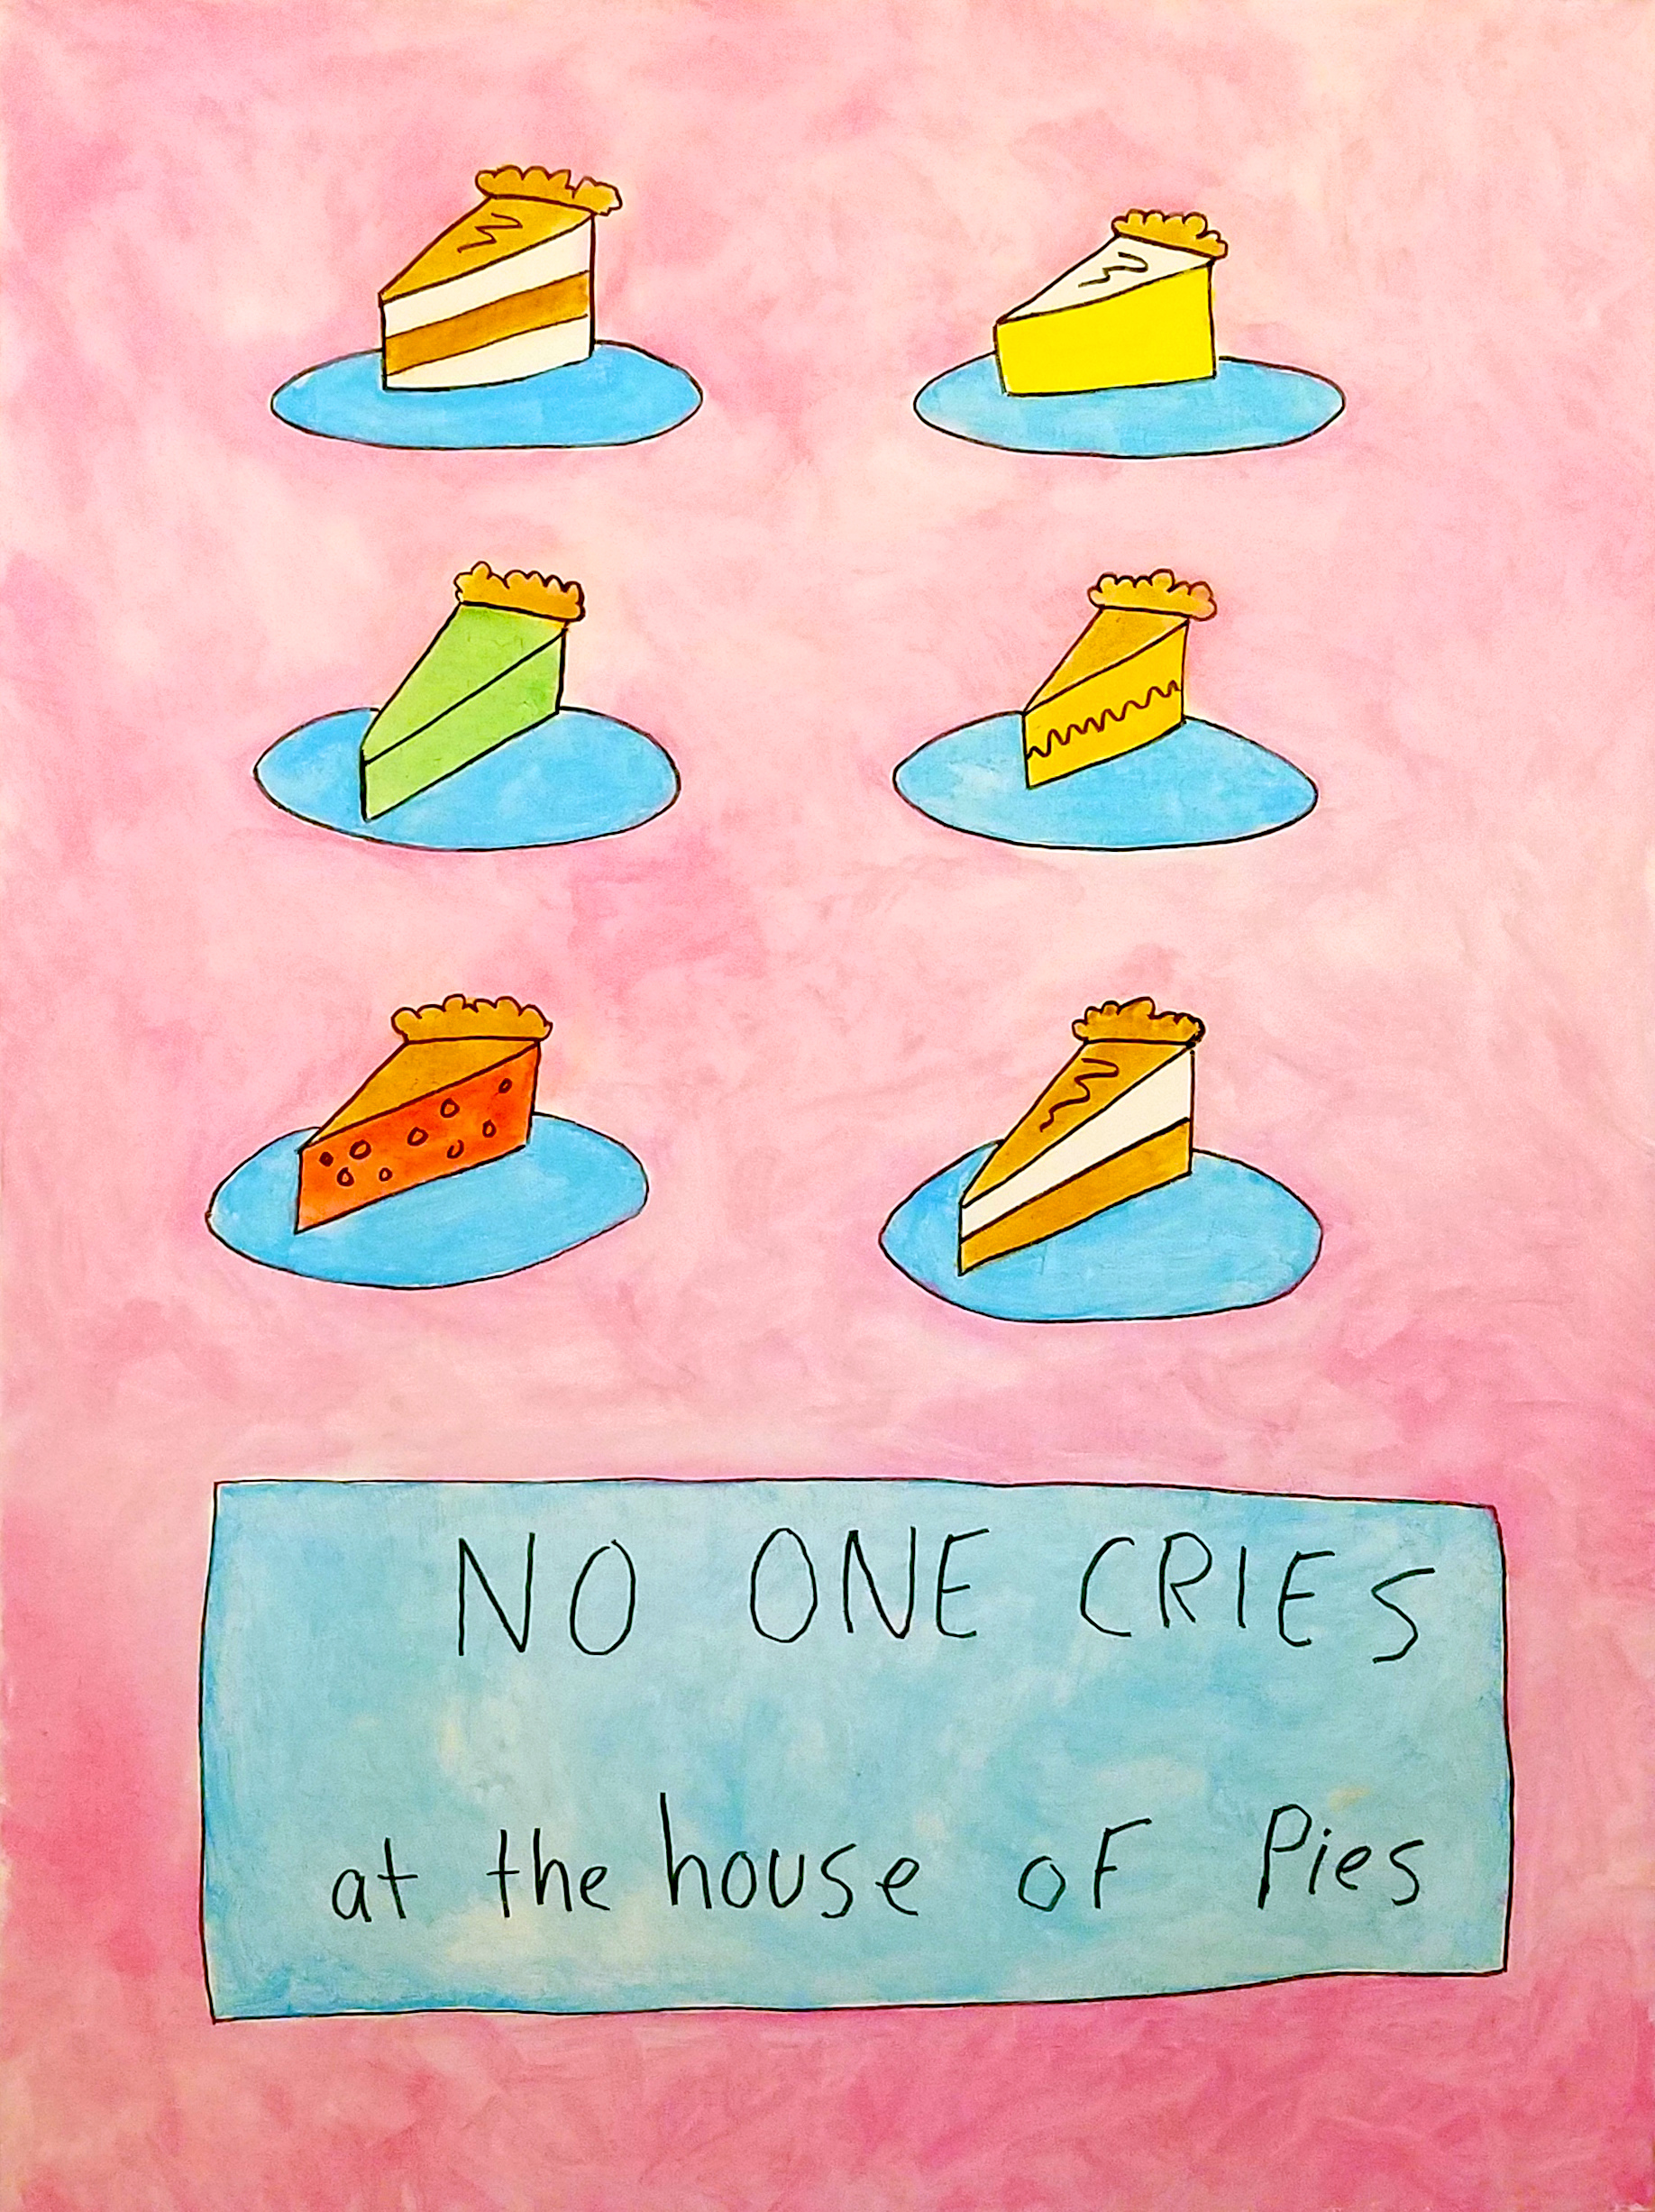 Mark Freeland, No One Cries at the house of Pies.jpg